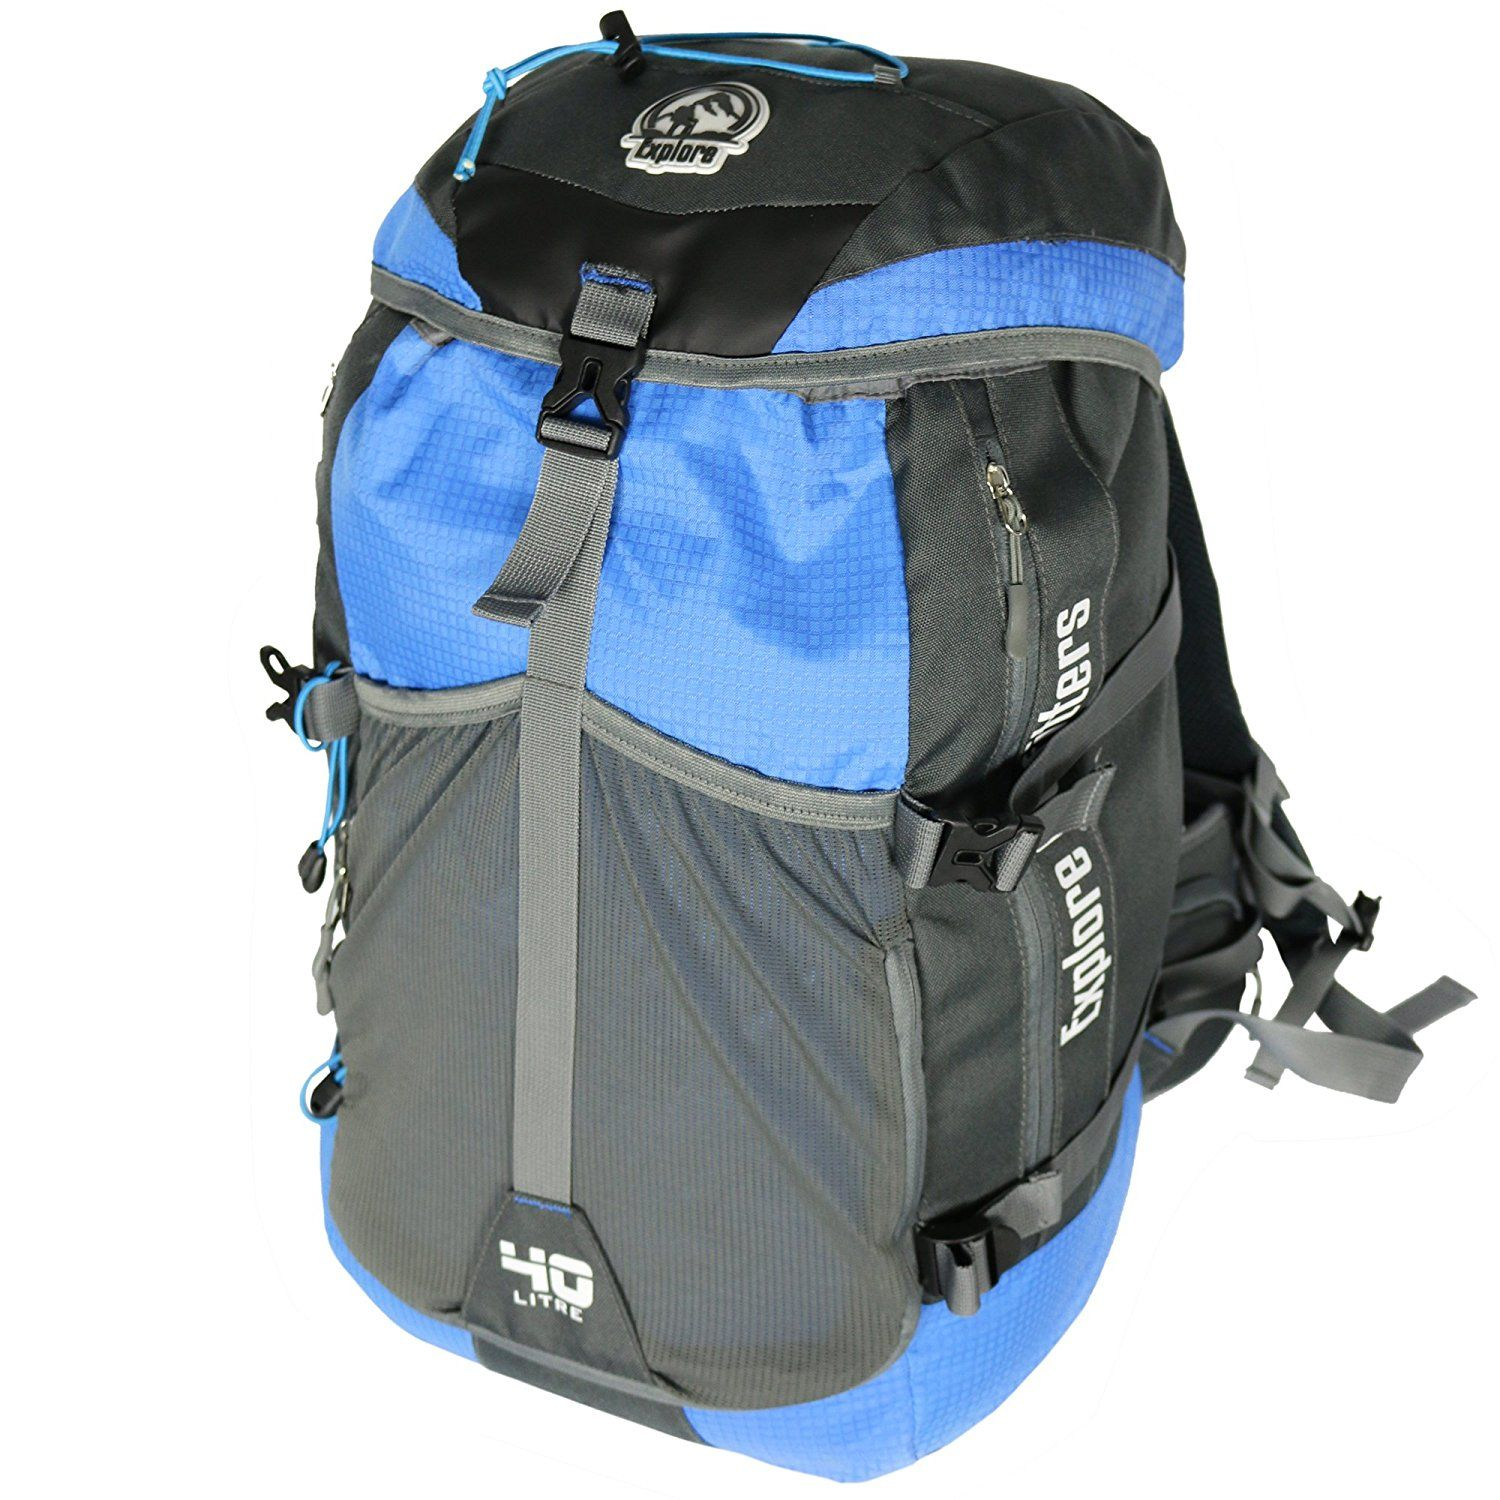 Explore Outfitters Waterproof Outdoor Hiking Backpack With ...